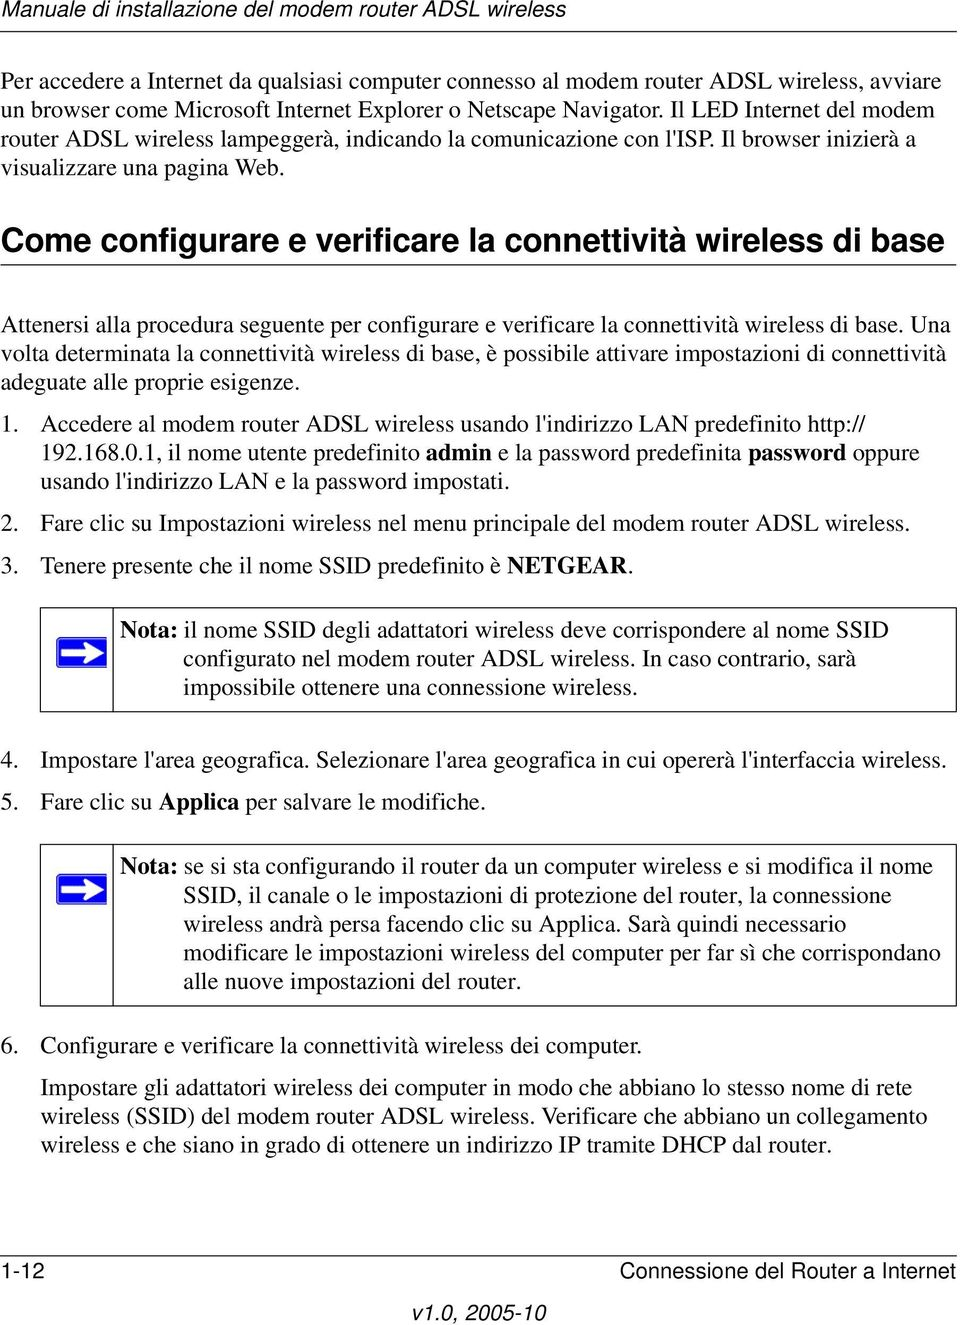 Come configurare e verificare la connettività wireless di base Attenersi alla procedura seguente per configurare e verificare la connettività wireless di base.